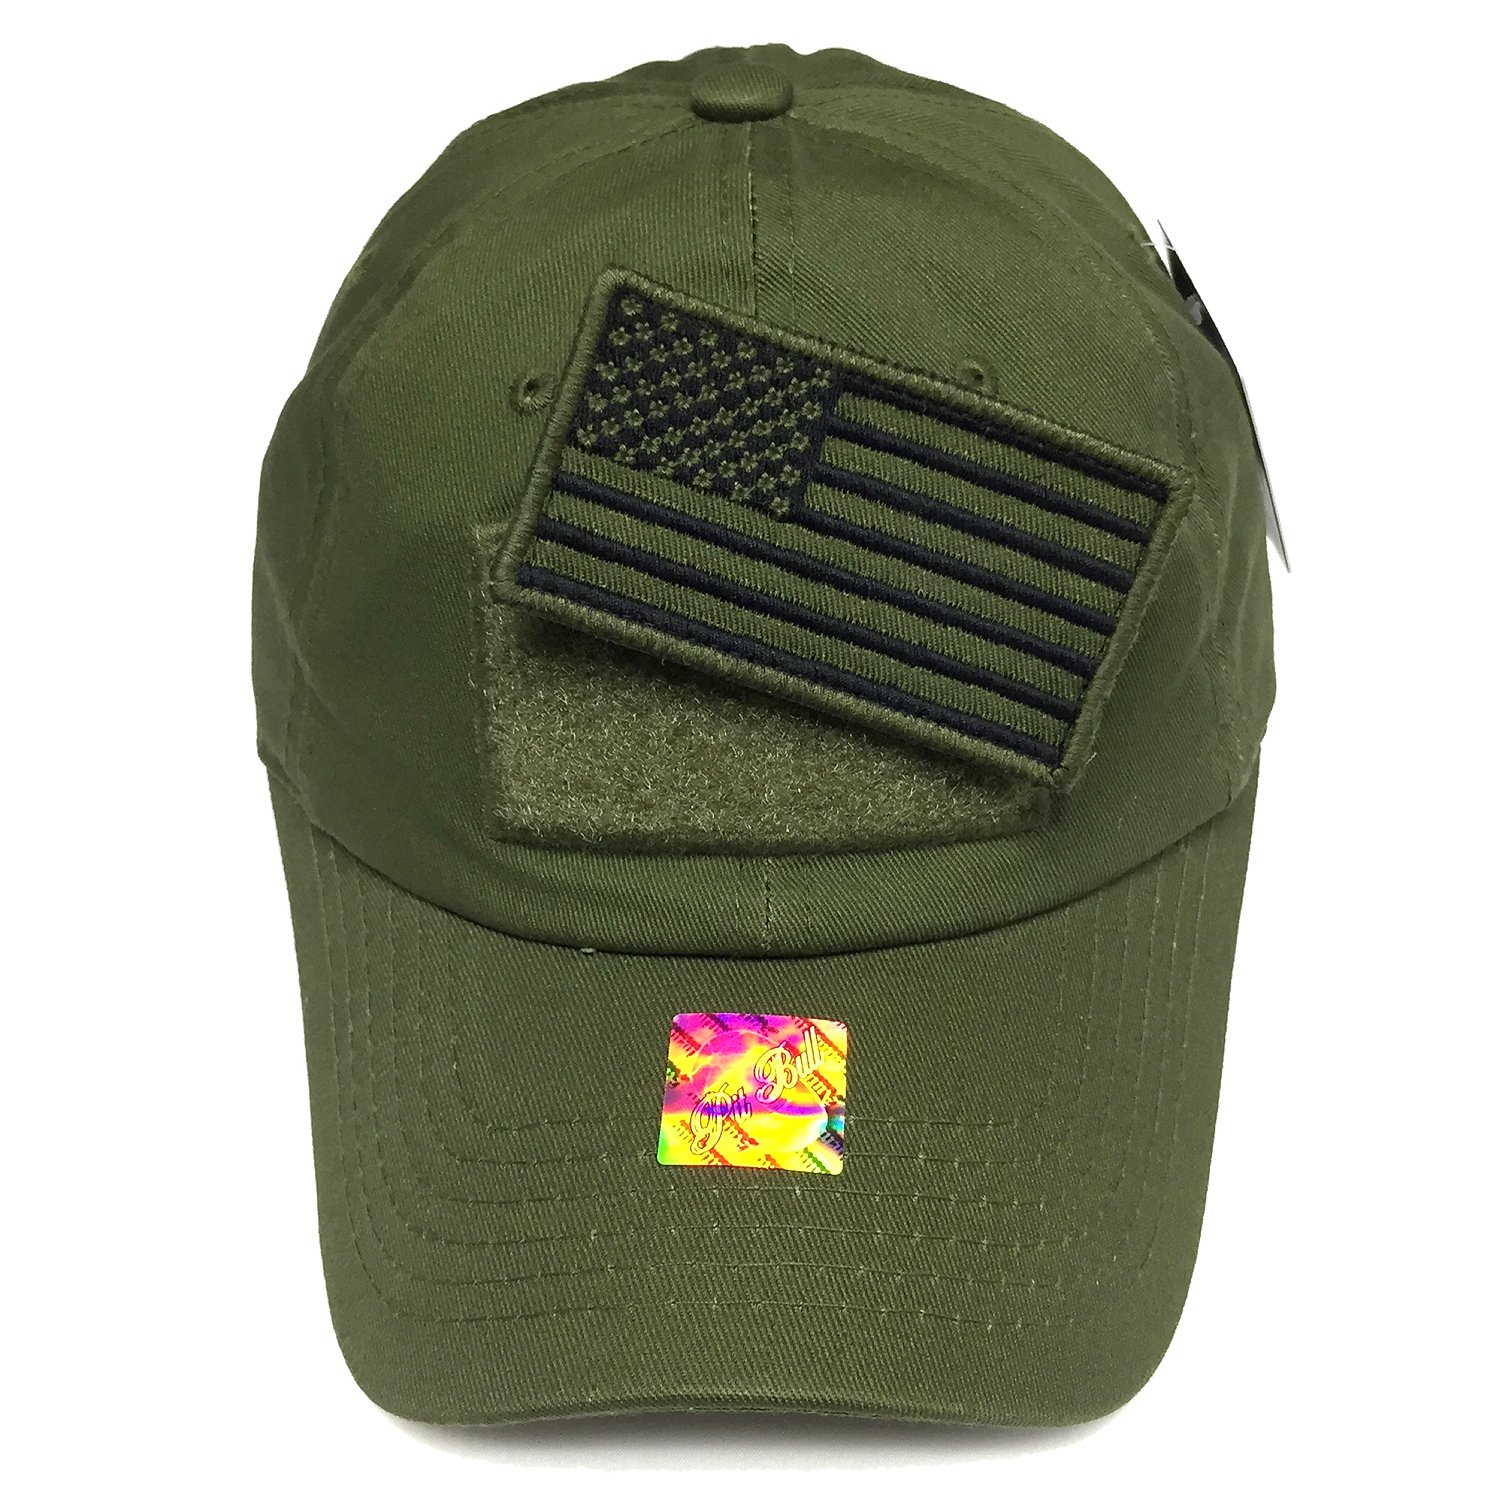 Vintage Cotton Cap U.S. Flag Patch Trucker Washed Baseball Hat Dad Hat  Army cab6c068622